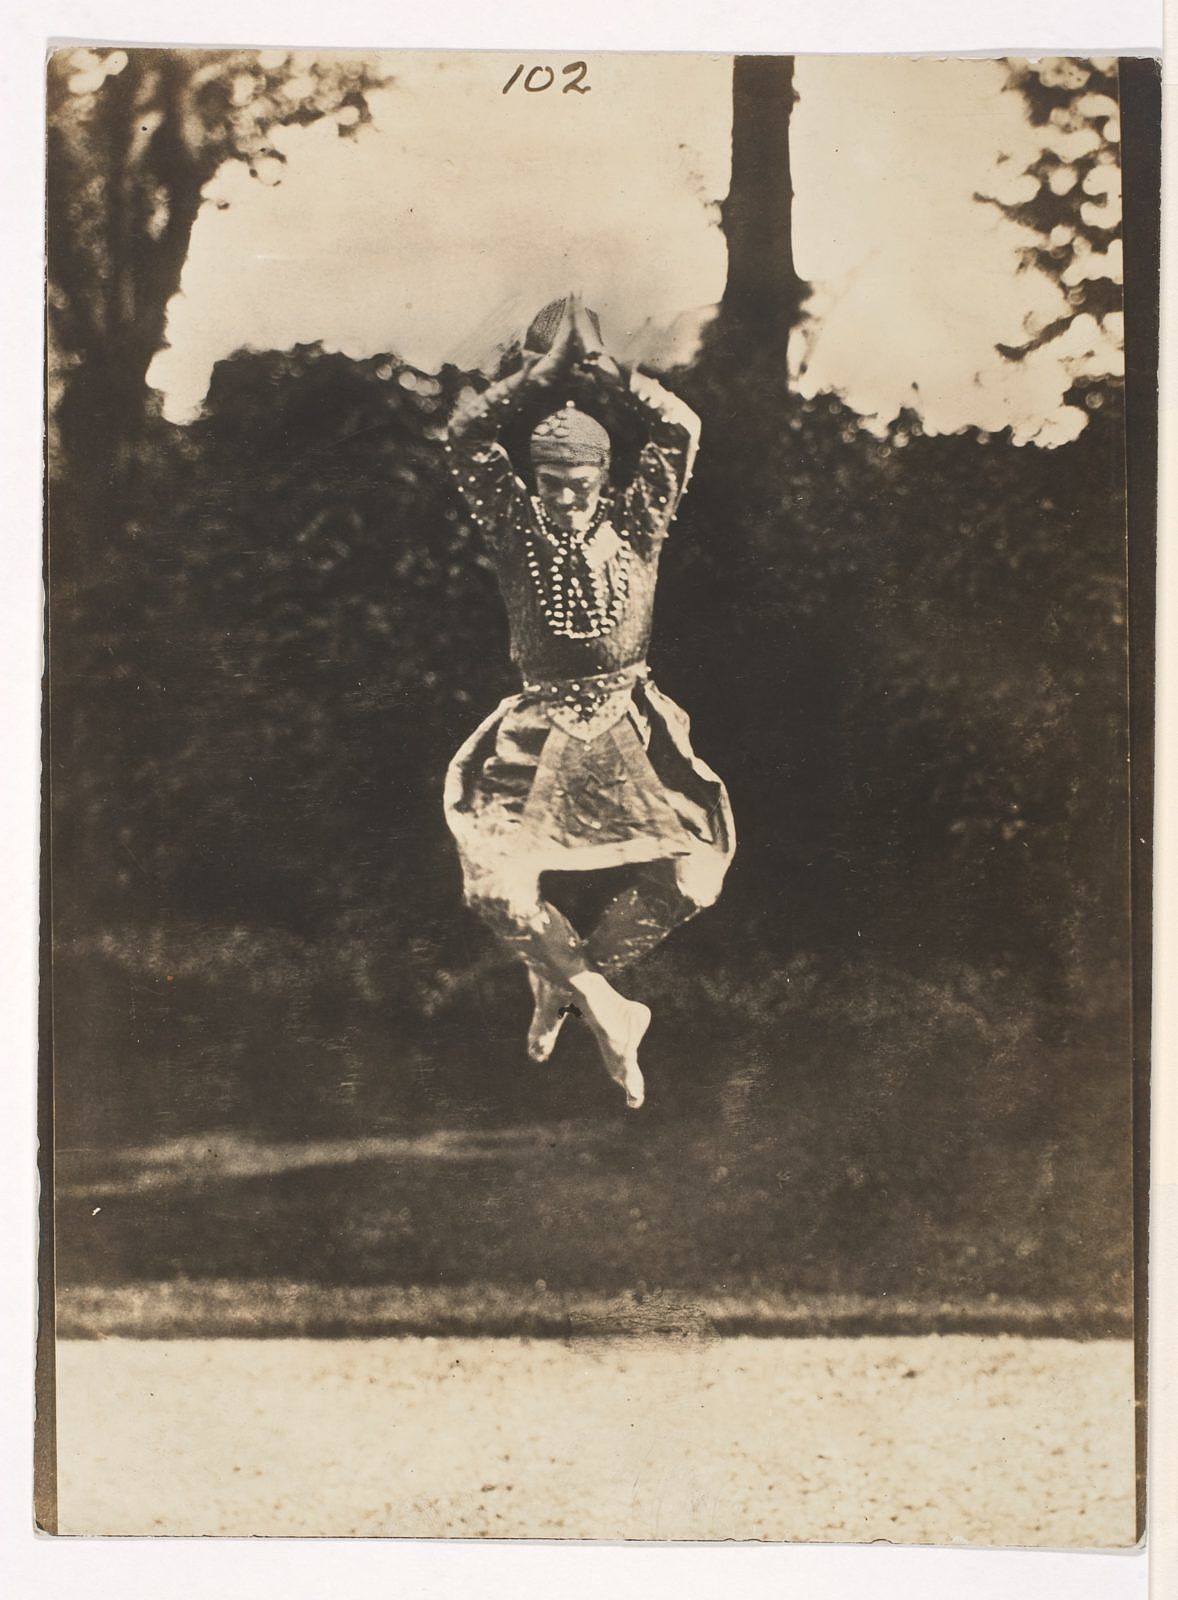 nijinsky-in-danse-siamoise-from-the-orientales-df4f16-1600-162804.jpg